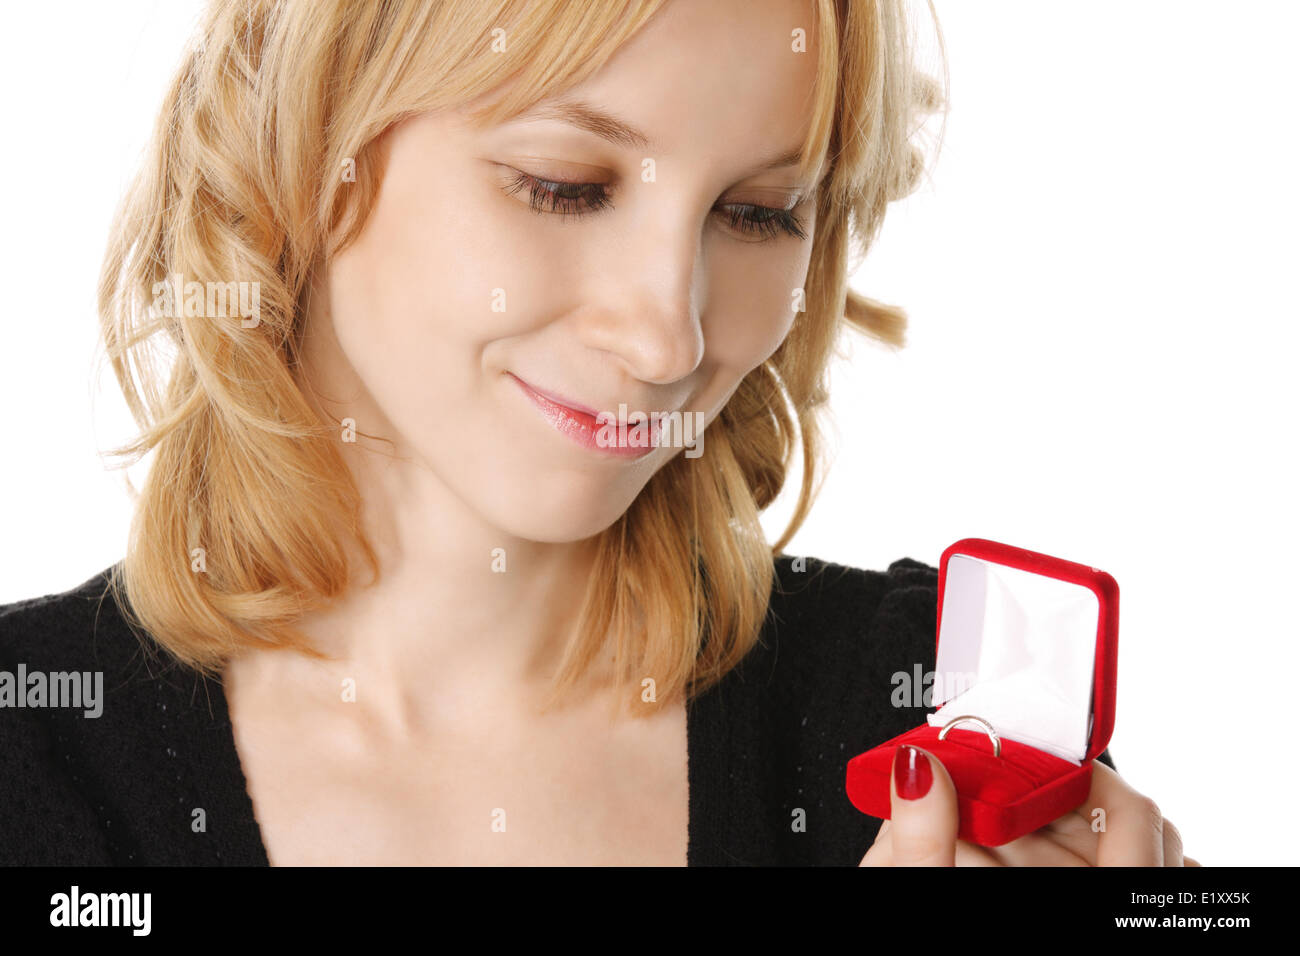 Ring in blondes hand - Stock Image